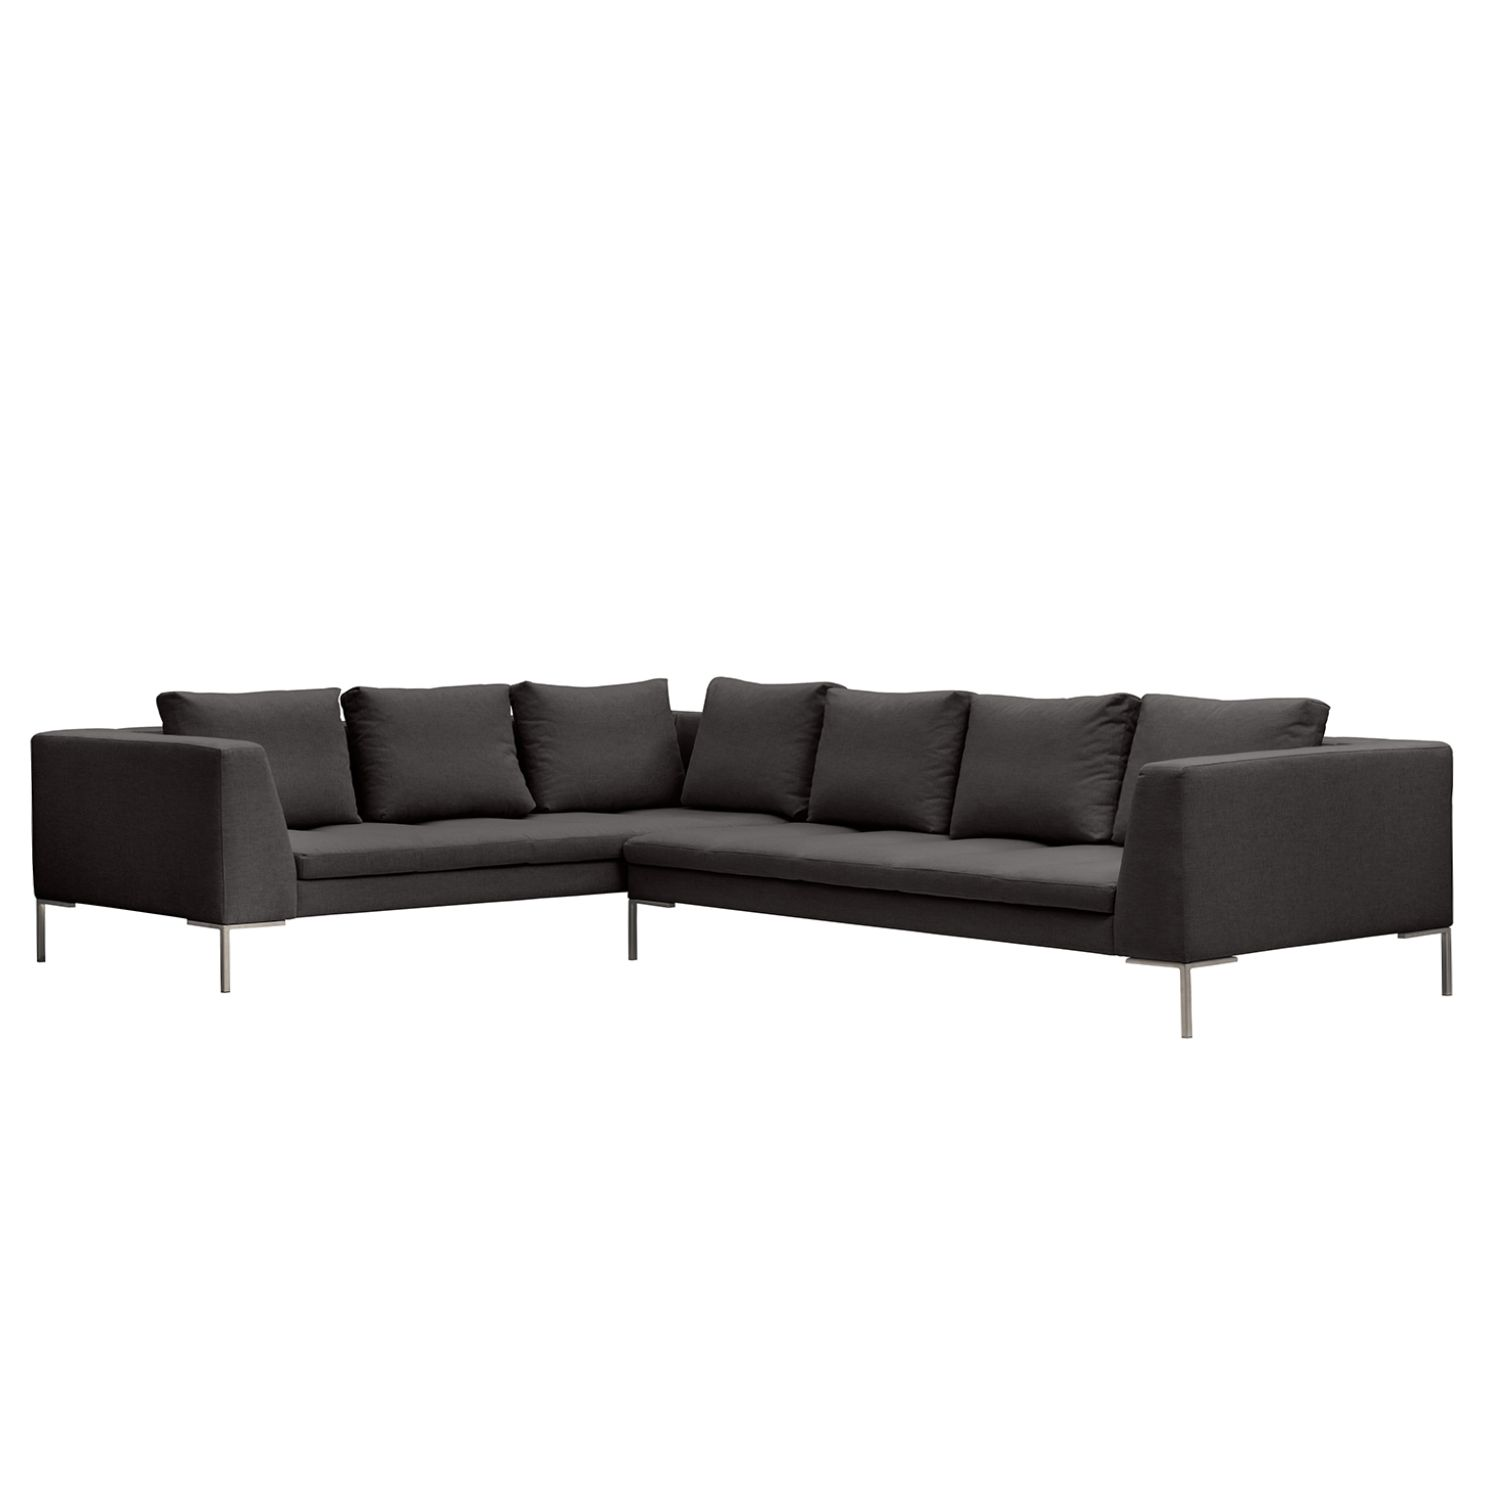 ecksofa madison ii webstoff 2 sitzer davorstehend rechts 319 cm stoff anda ii anthrazit. Black Bedroom Furniture Sets. Home Design Ideas